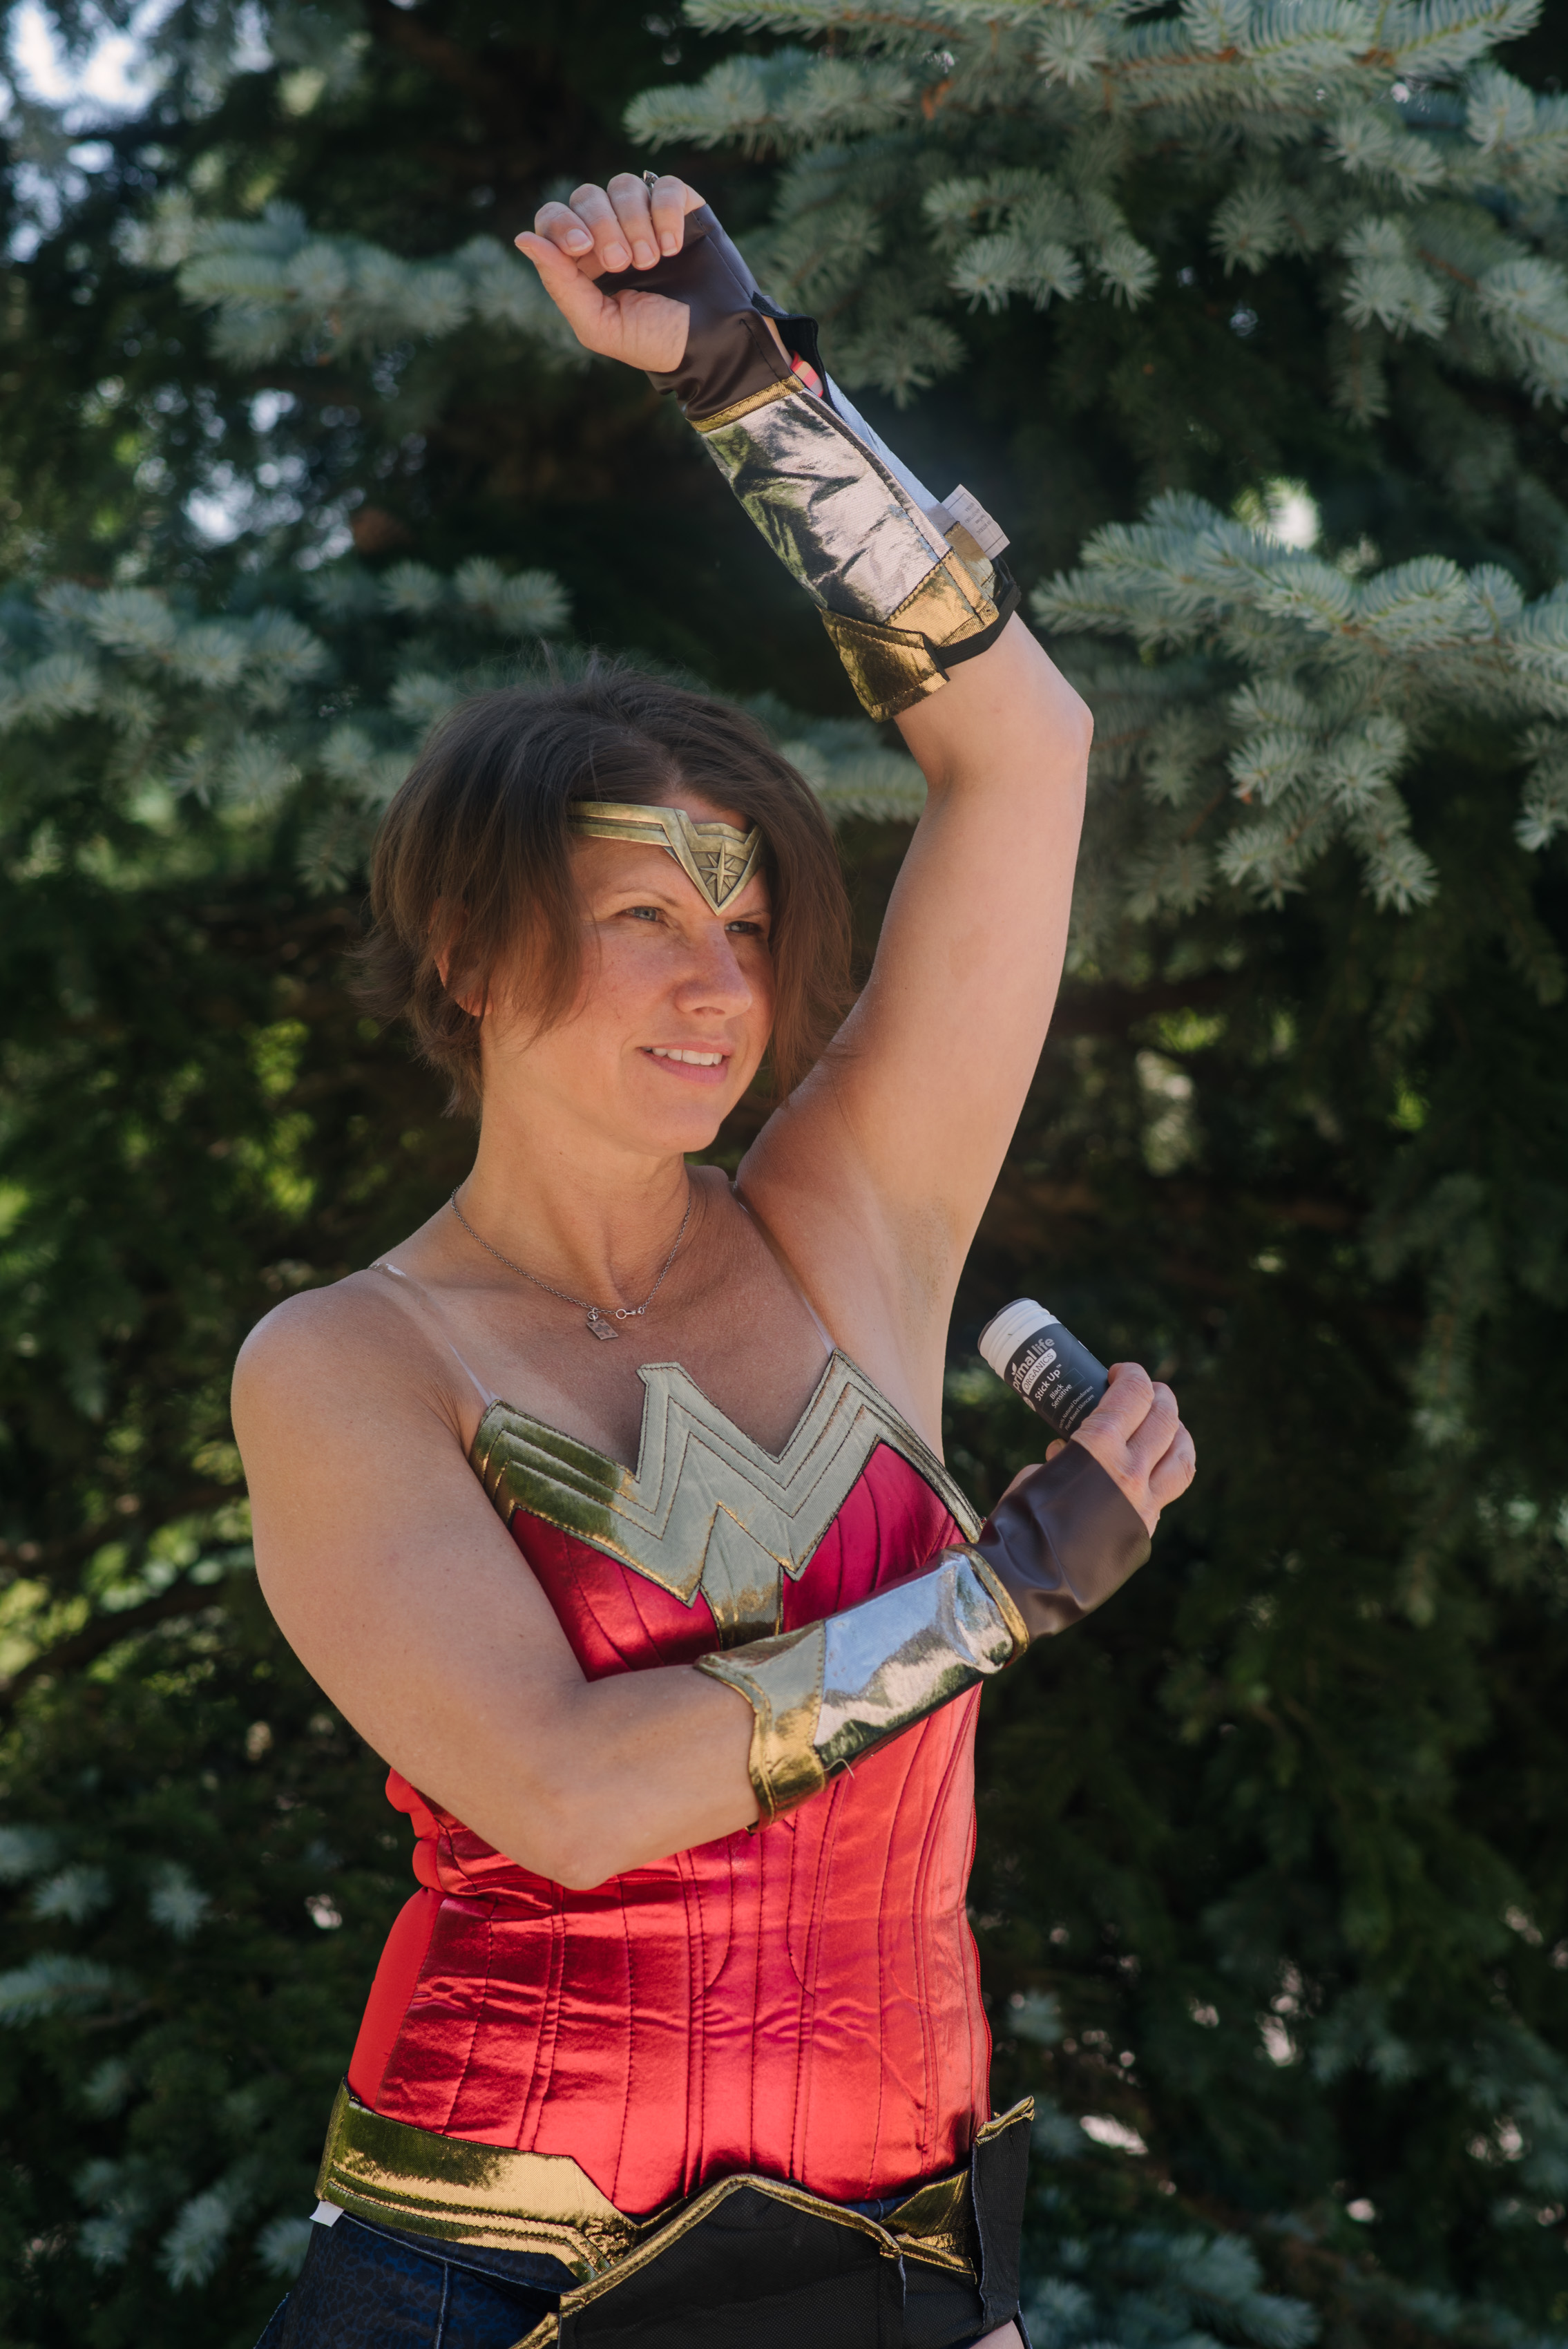 Trina Felber as Wonder Woman with Stick Up Natural Deodorant from Primal Life Organics